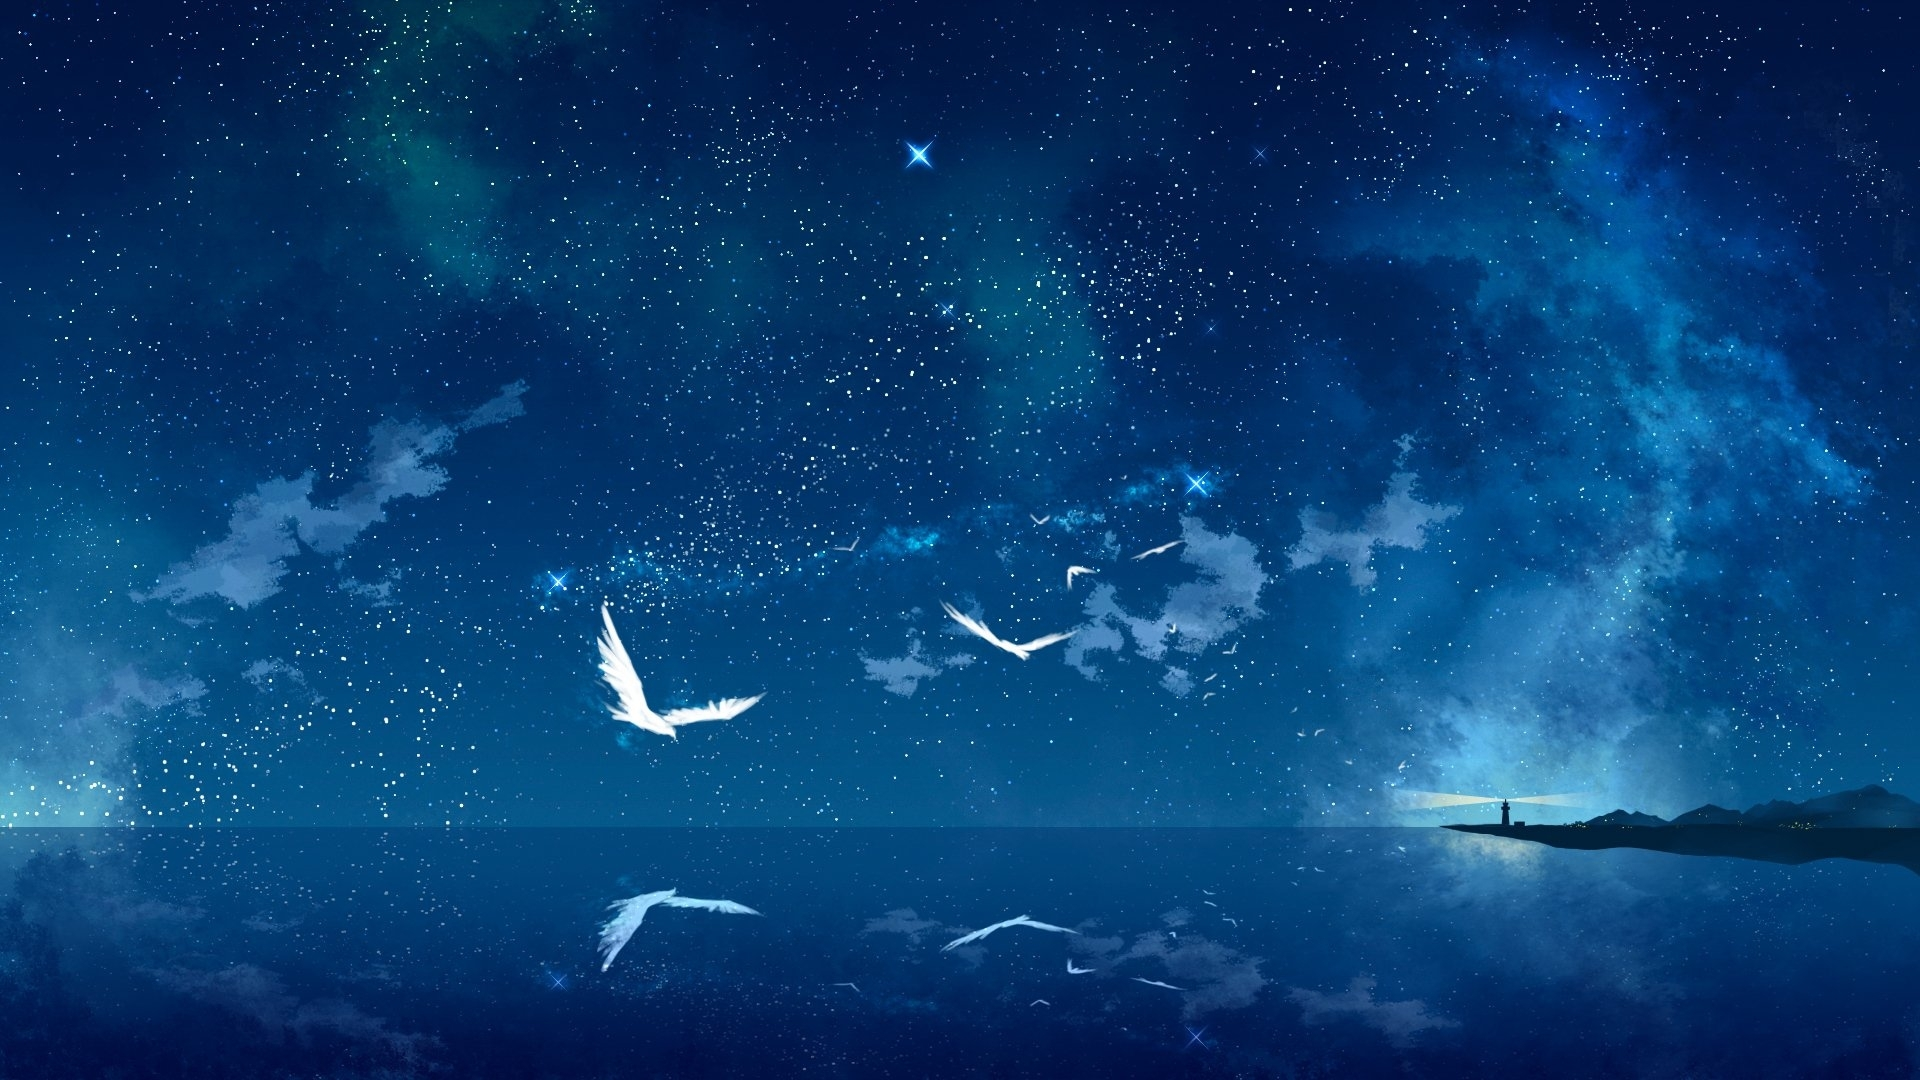 10 New Starry Sky Wallpaper Hd FULL HD 1080p For PC Desktop